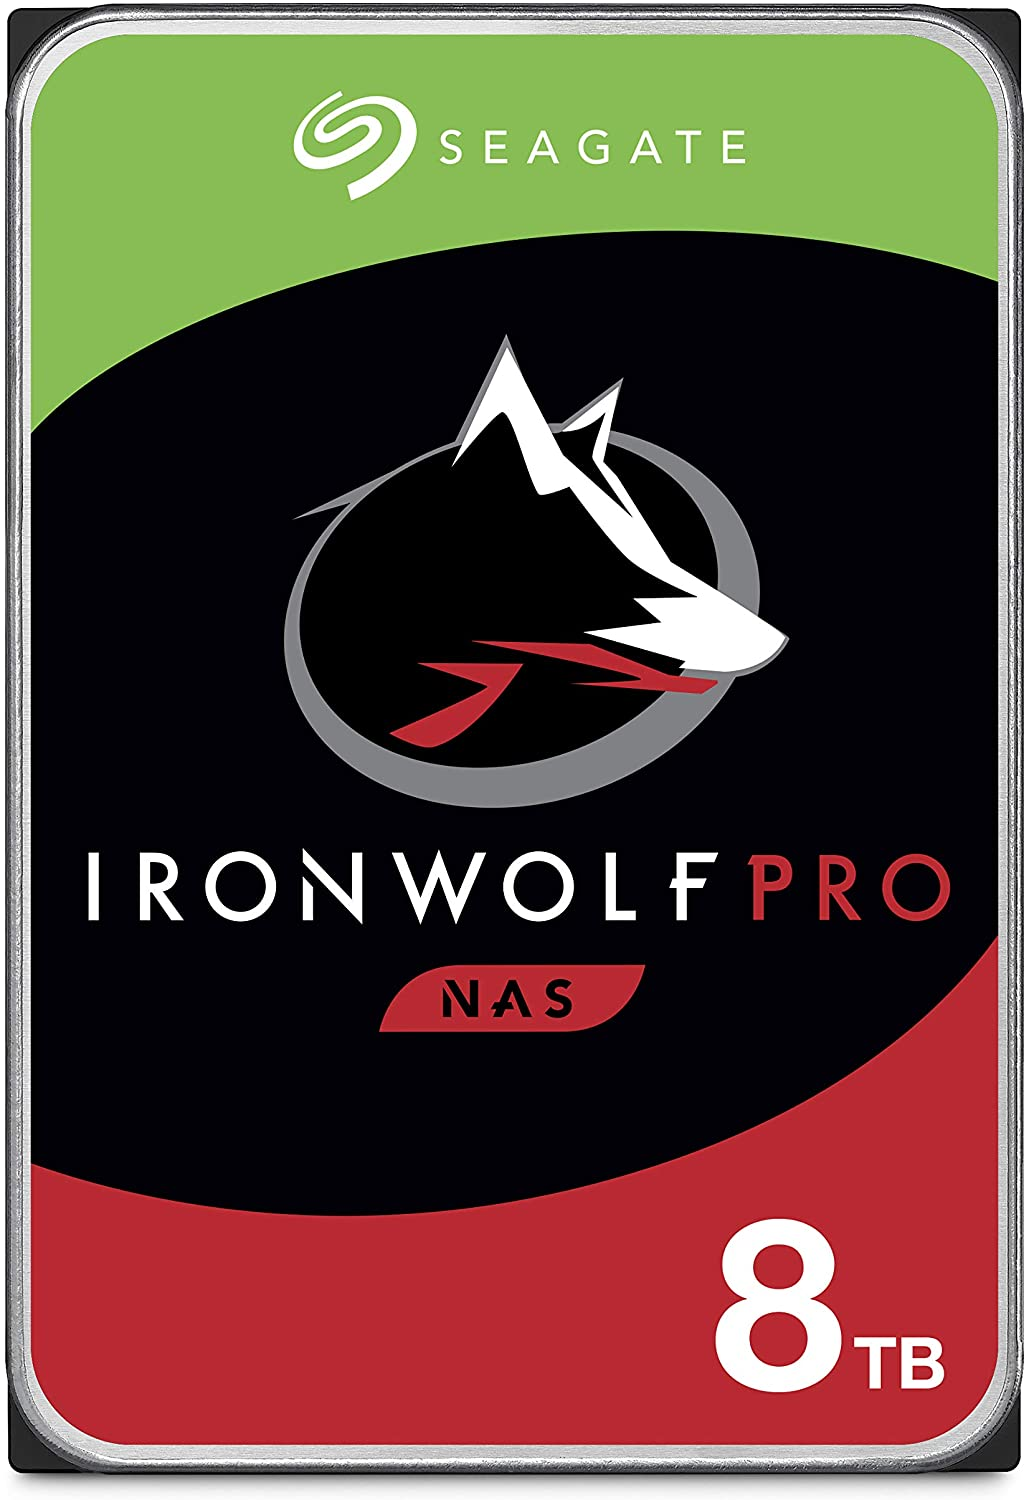 Seagate IronWolf Pro 8TB NAS Internal Hard Drive HDD – CMR 3.5 Inch SATA 6Gb/s 7200 RPM 256MB Cache for RAID Network Attached Storage, Data Recovery Service – Frustration Free Packaging (ST8000NE001)